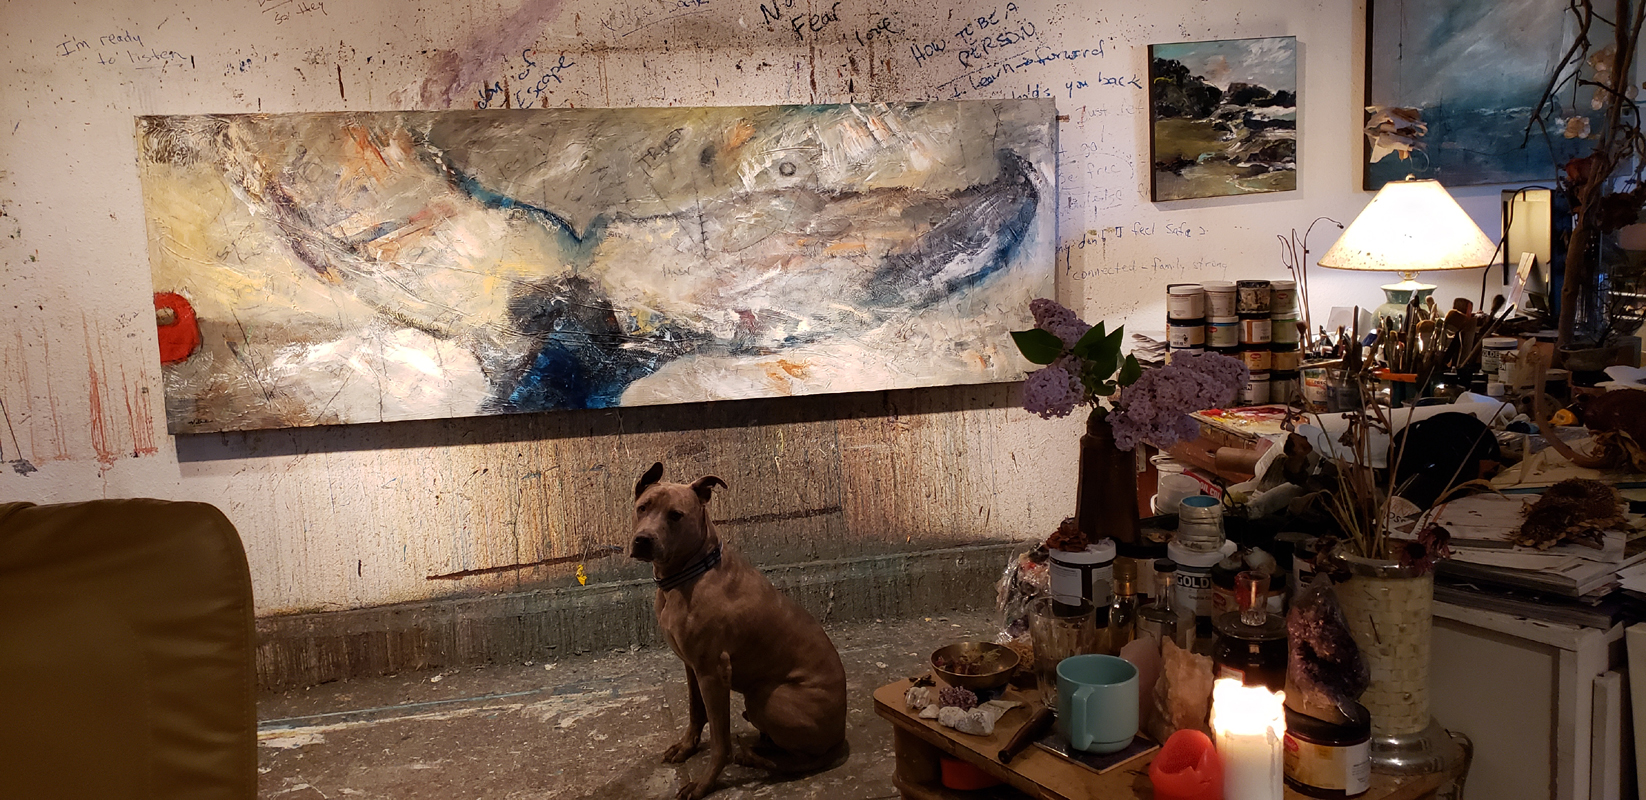 New large scale painting, 36 x 108 inches, in process now, 05-2019.